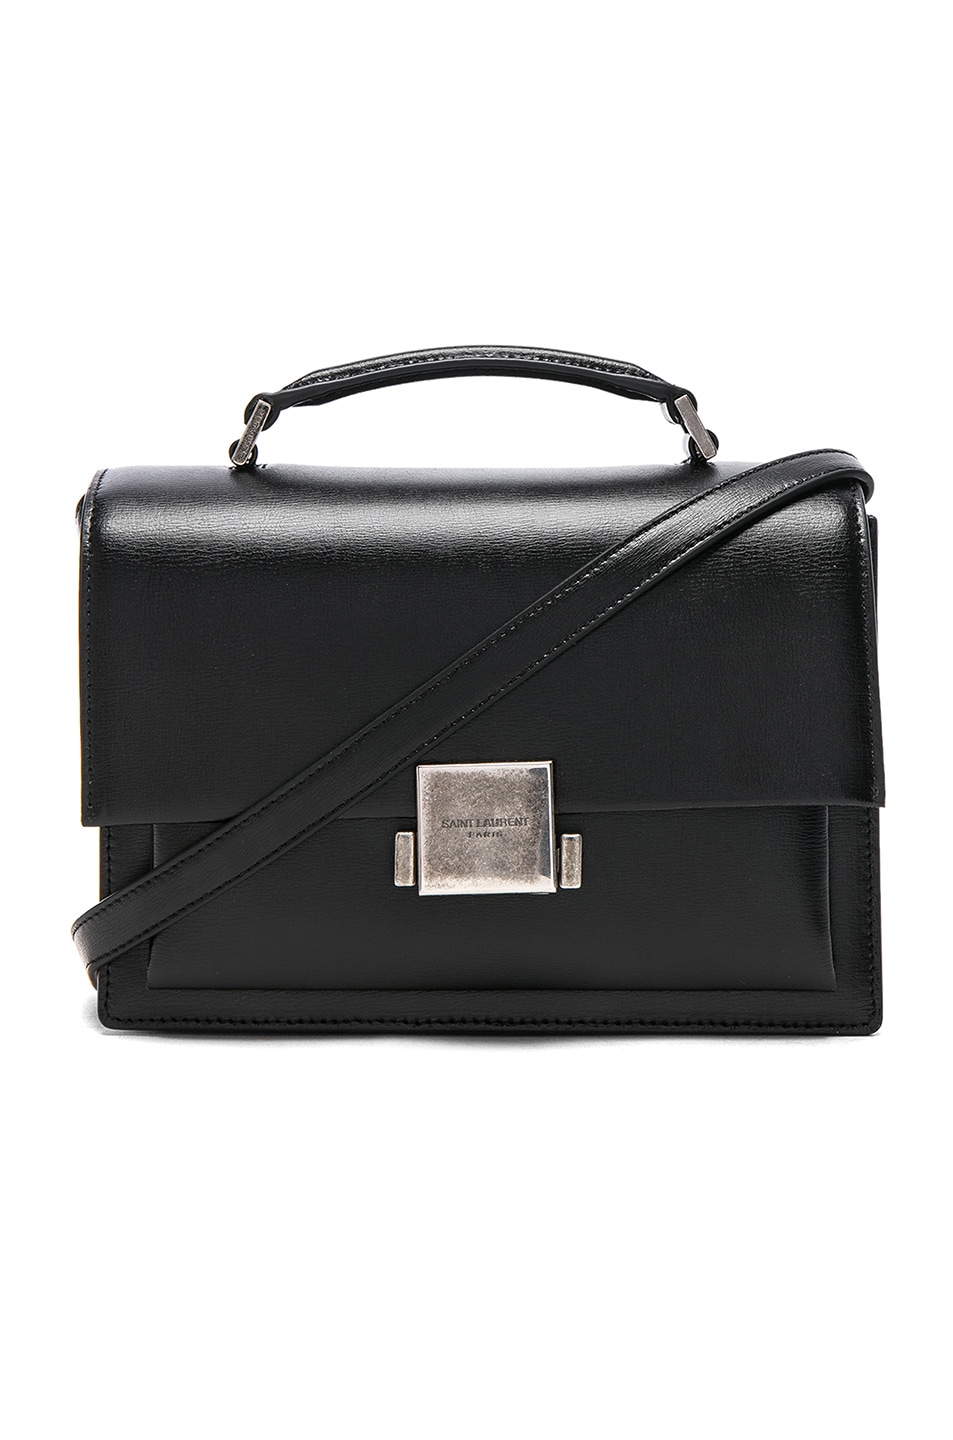 Image 1 of Saint Laurent Medium Bellechasse Schoolbag in Black